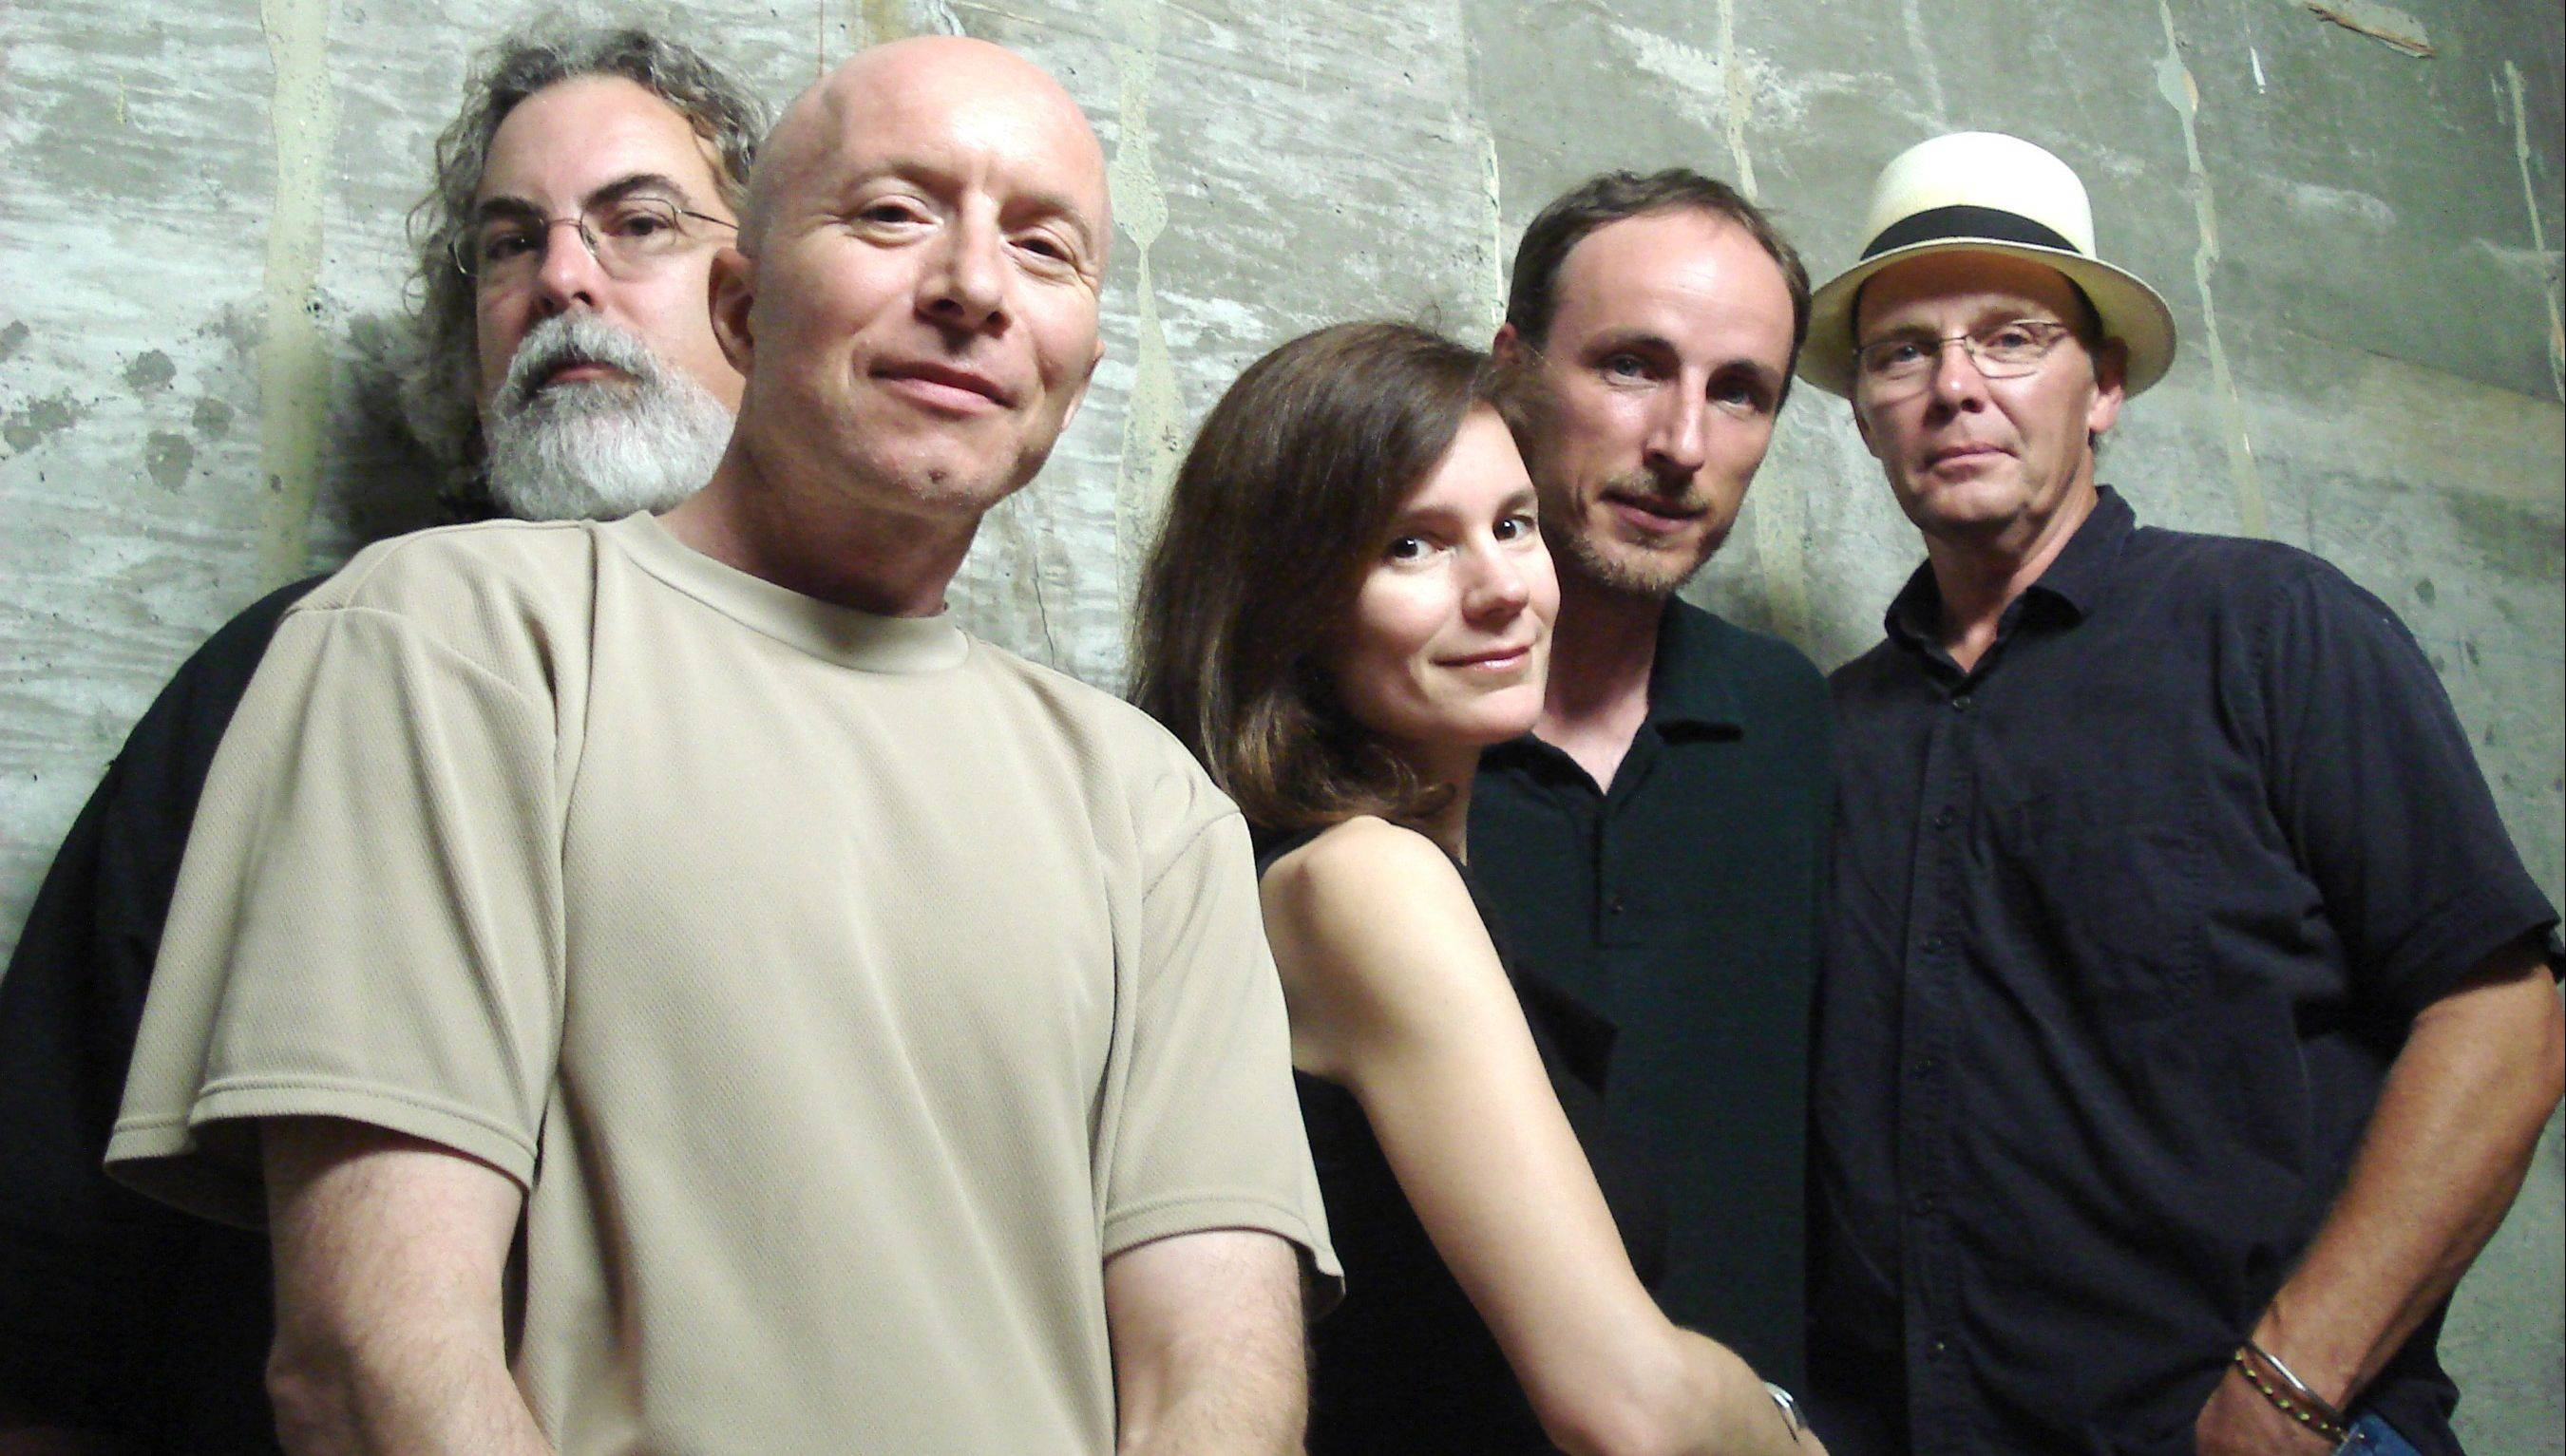 The band 10,000 Maniacs will be the big act Saturday night on the music stage.